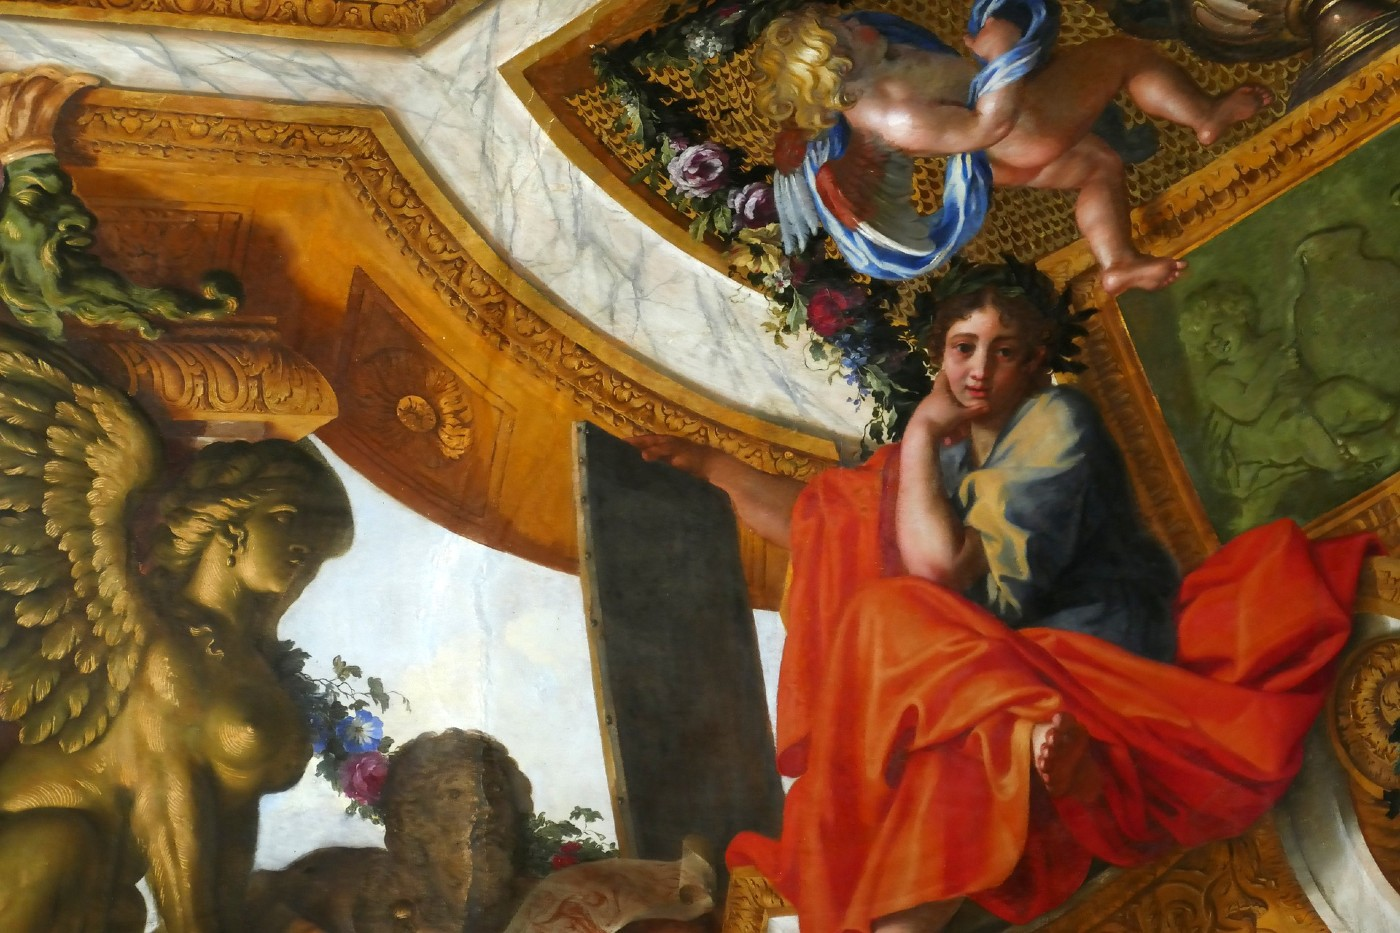 The muse Polyhymnia painted by Charles Le Brun at the Château de Vaux-le-Vicomte.